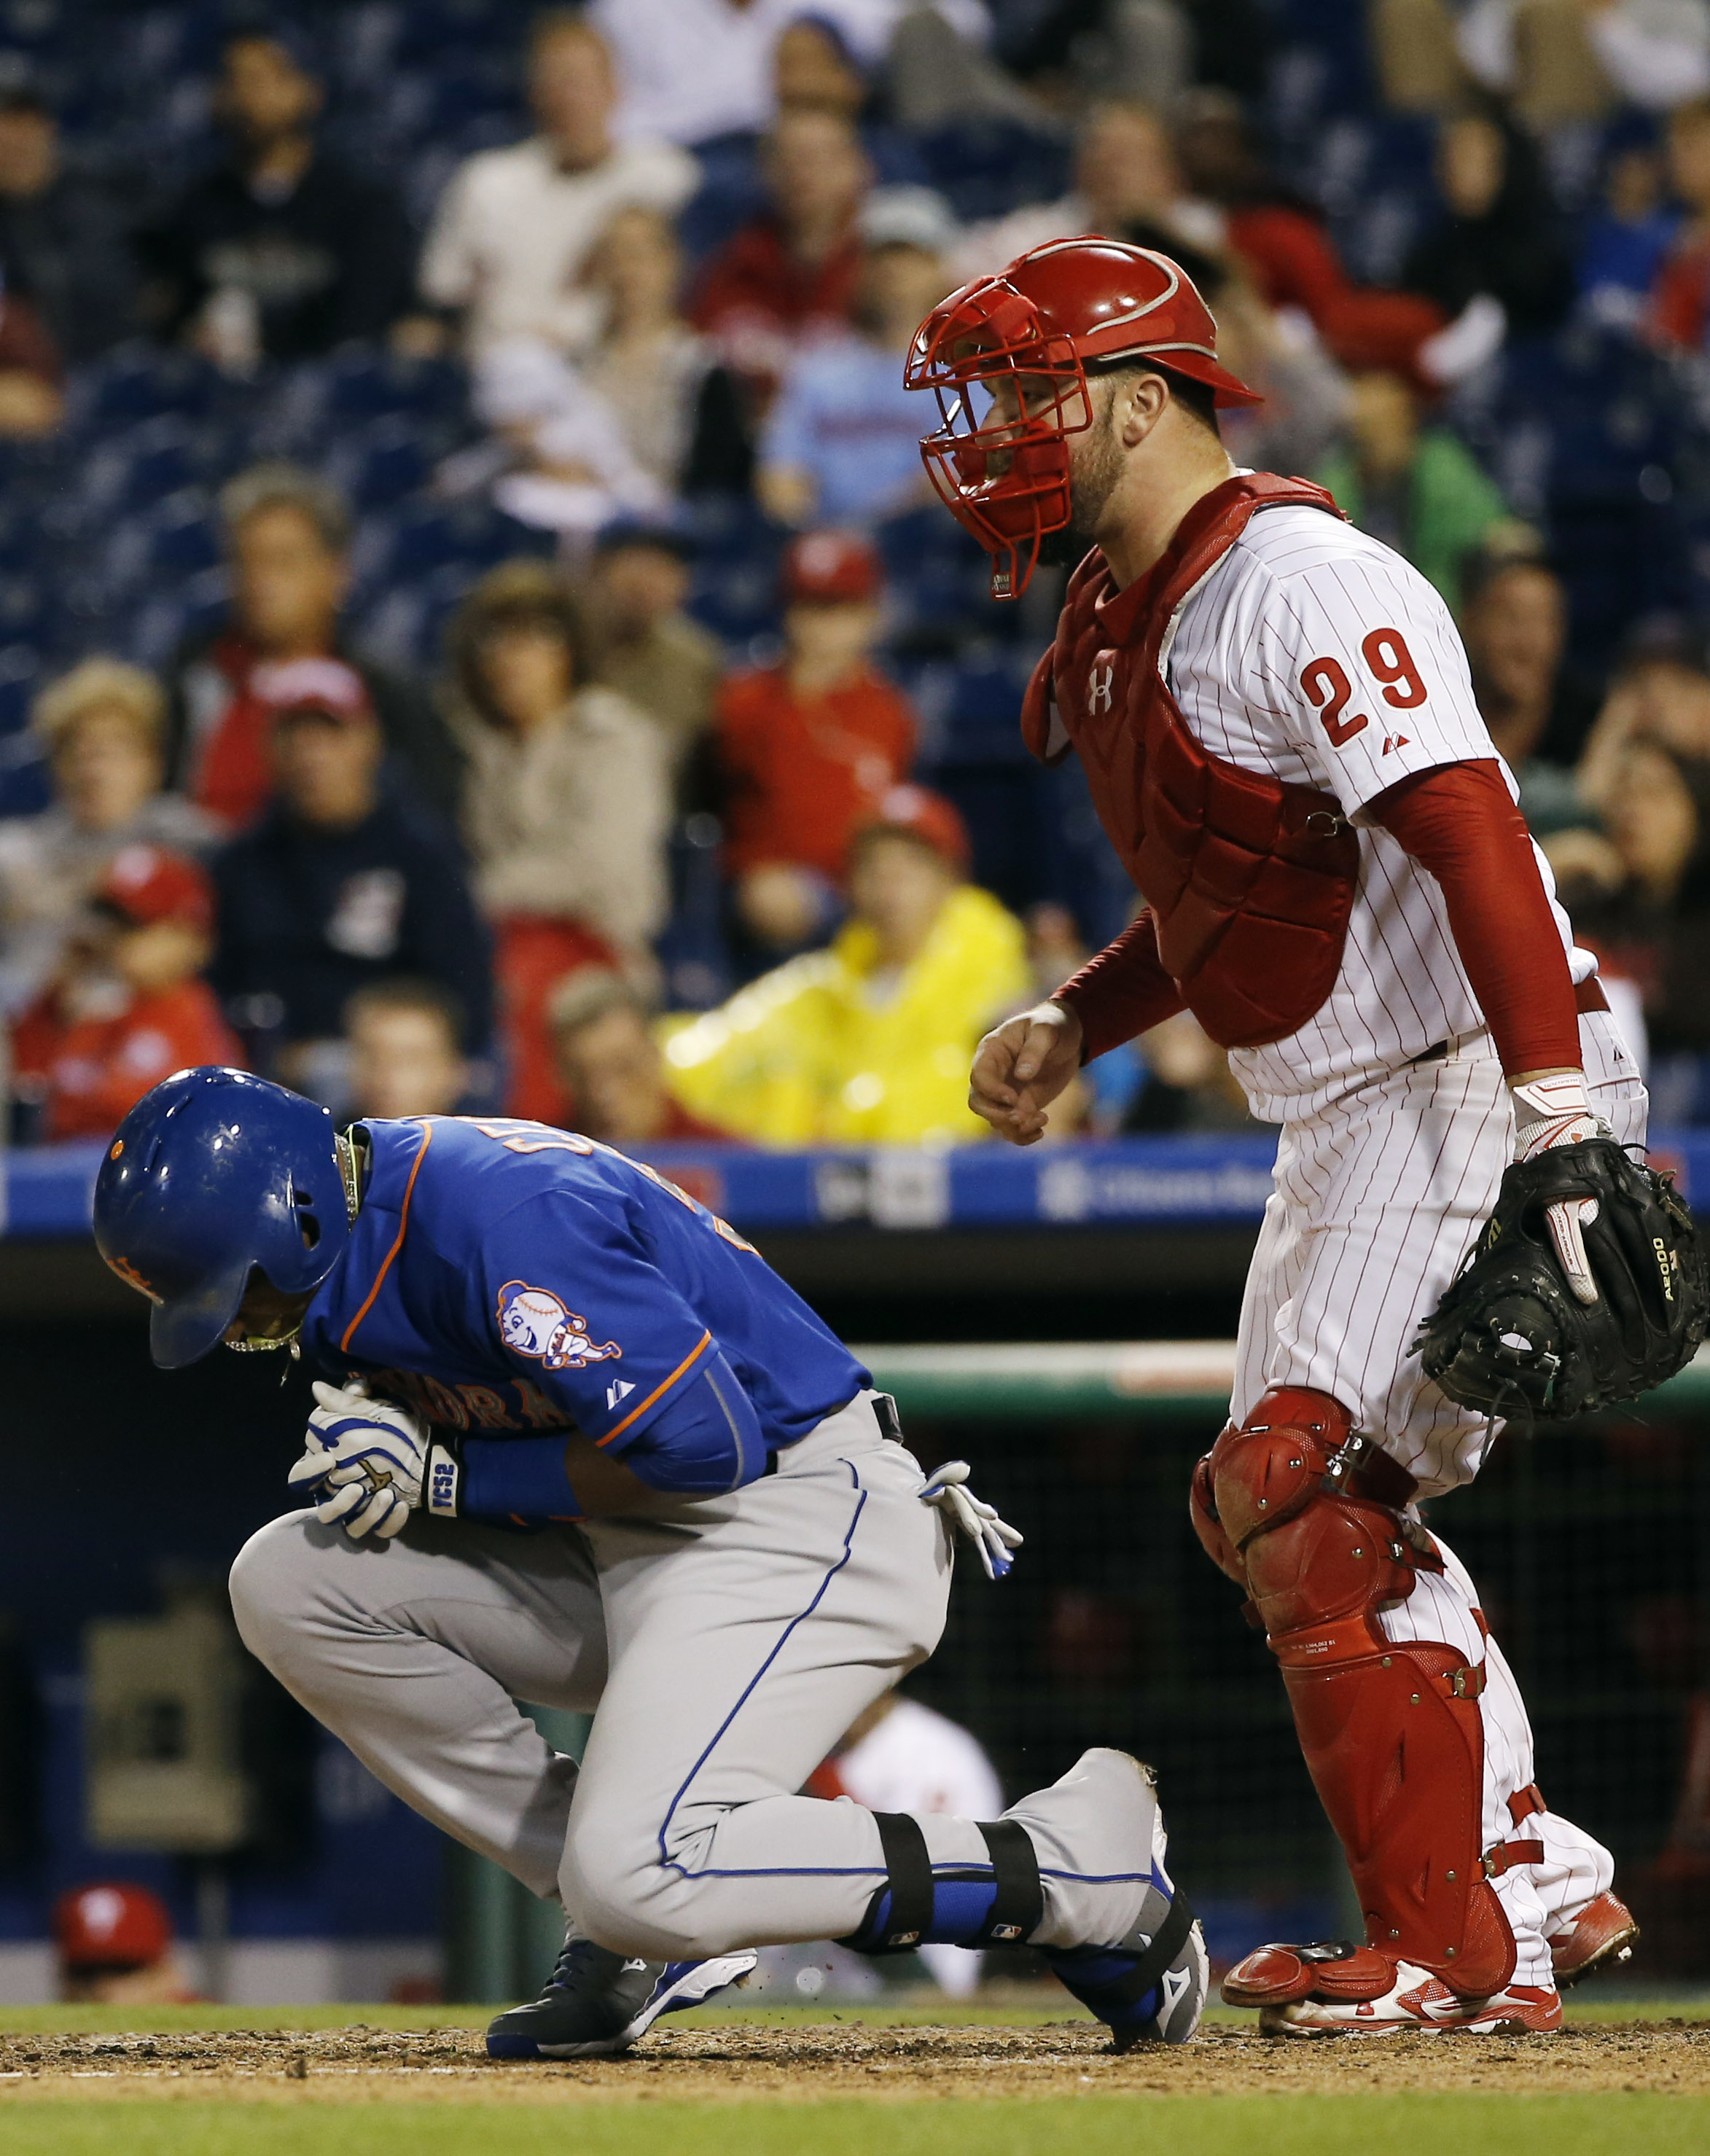 New York Mets' Yoenis Cespedes, left, reacts after being hit by a pitch from Philadelphia Phillies' Justin De Fratus as catcher Cameron Rupp looks on during the third inning of a baseball game, Wednesday, Sept. 30, 2015, in Philadelphia. (AP Photo/Matt Sl